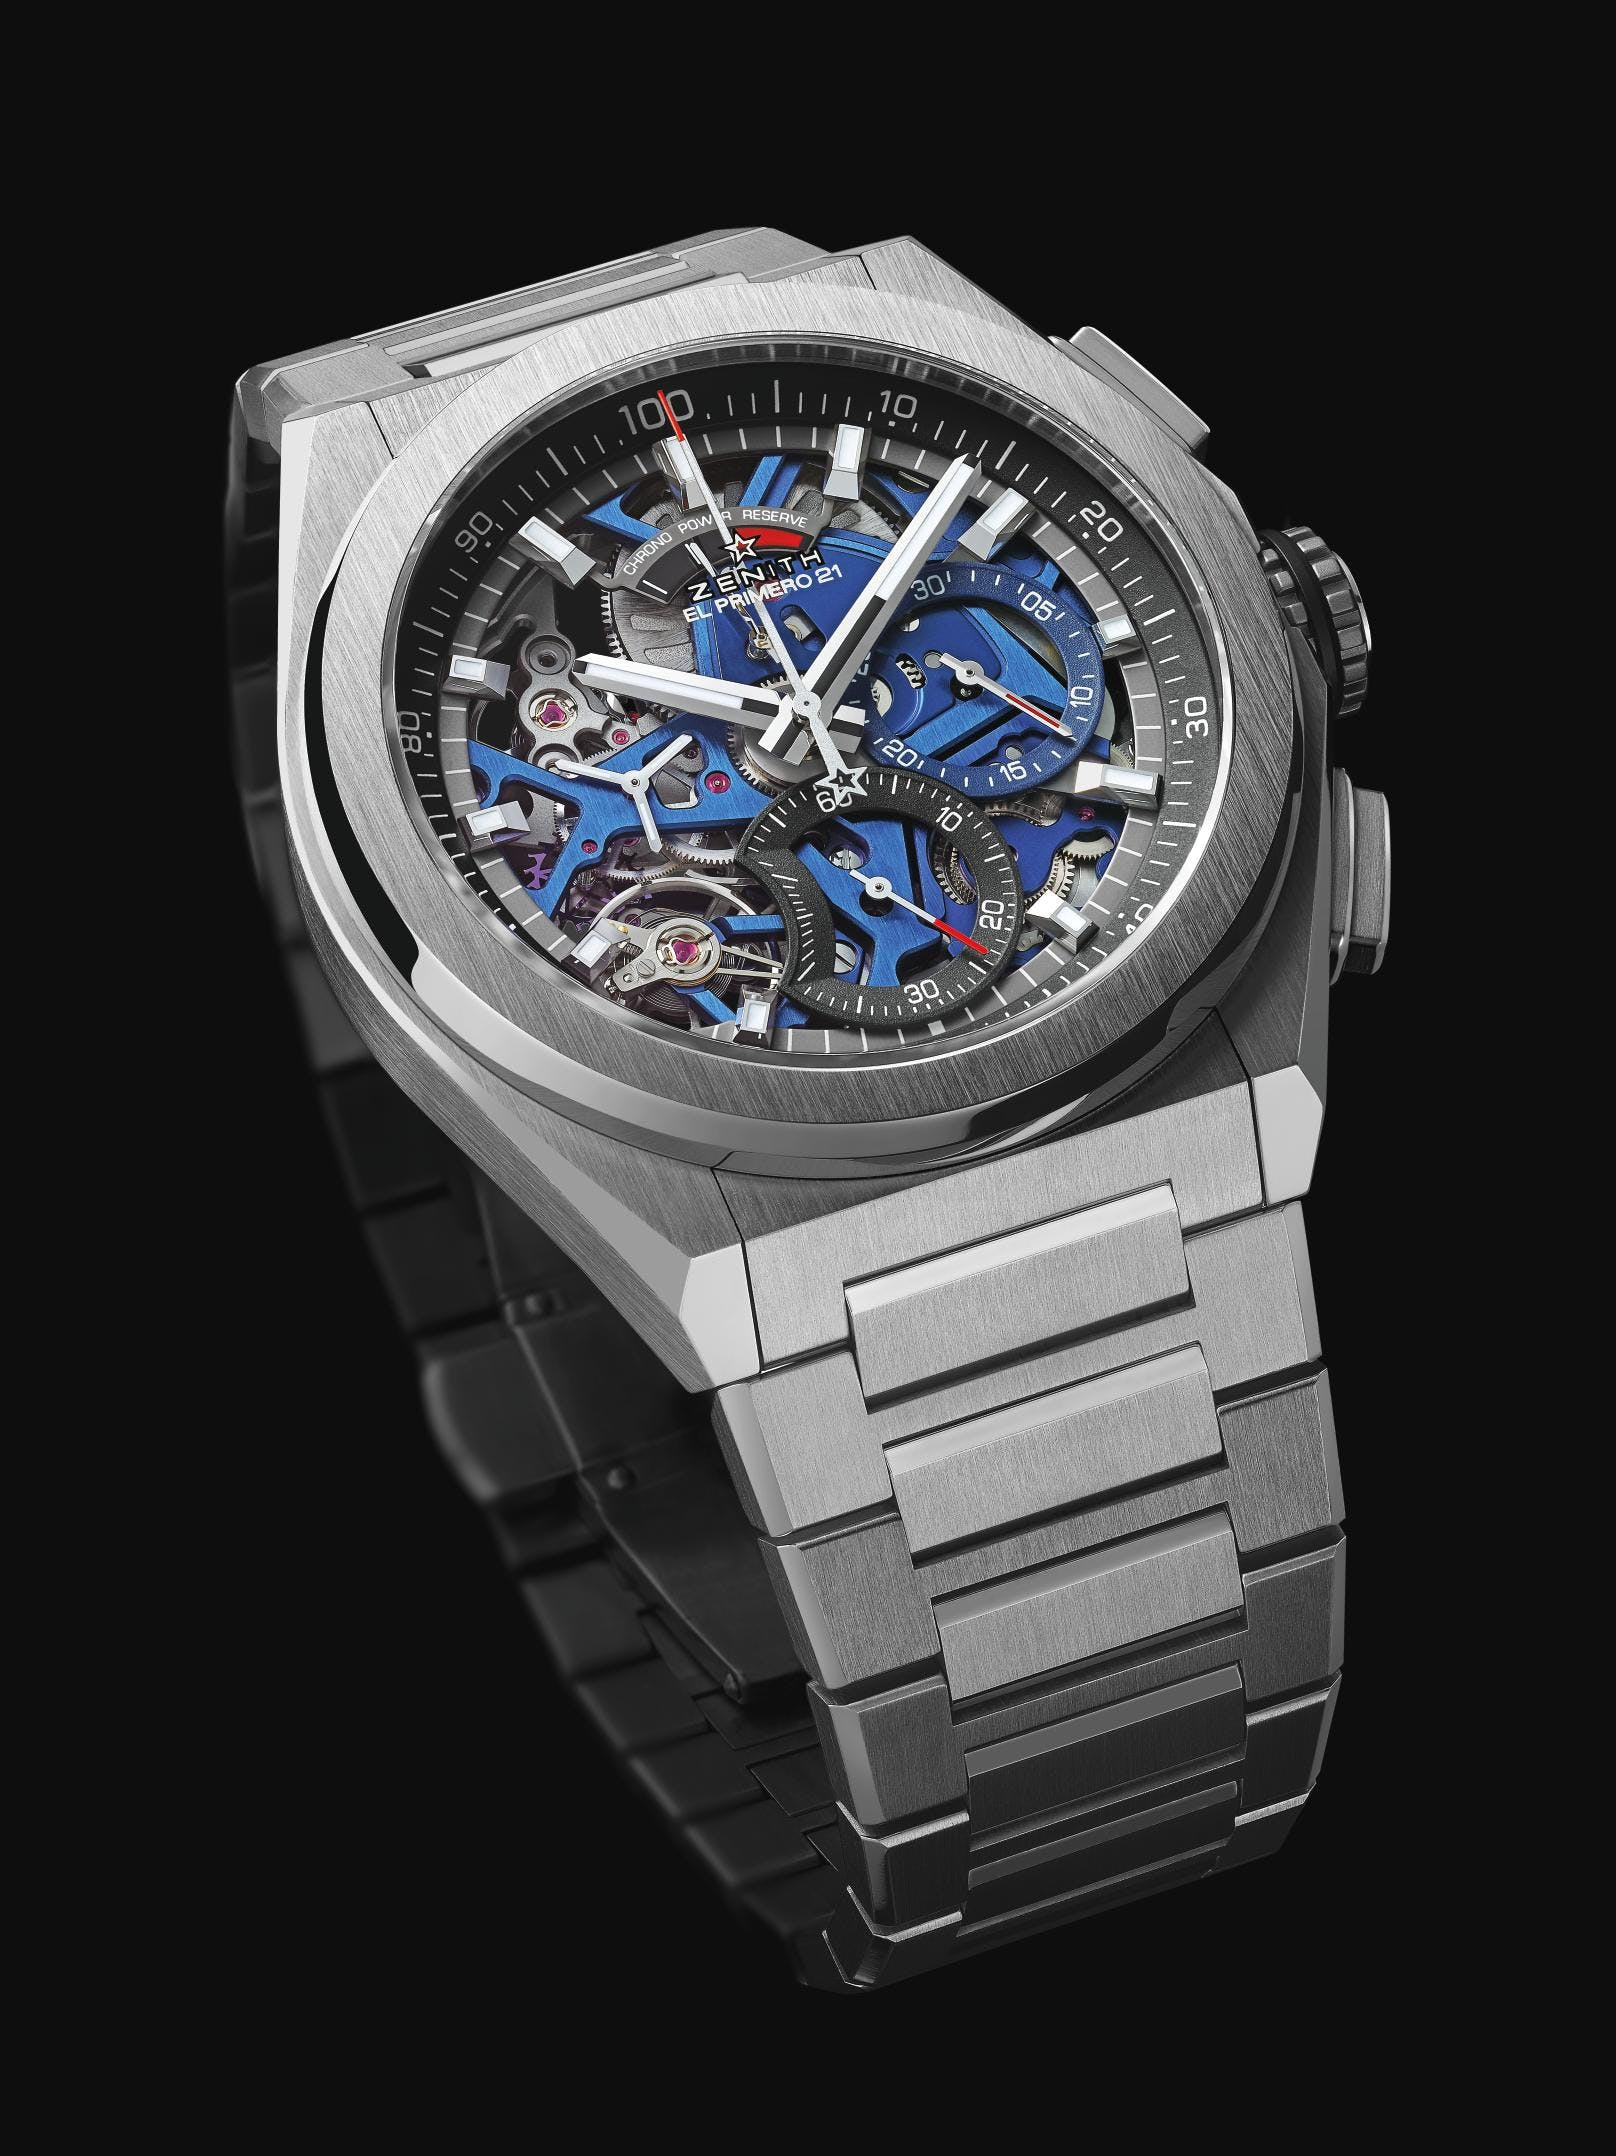 Fed up with vintage? The best modern antidotes for under $10K from Zenith to Hublot